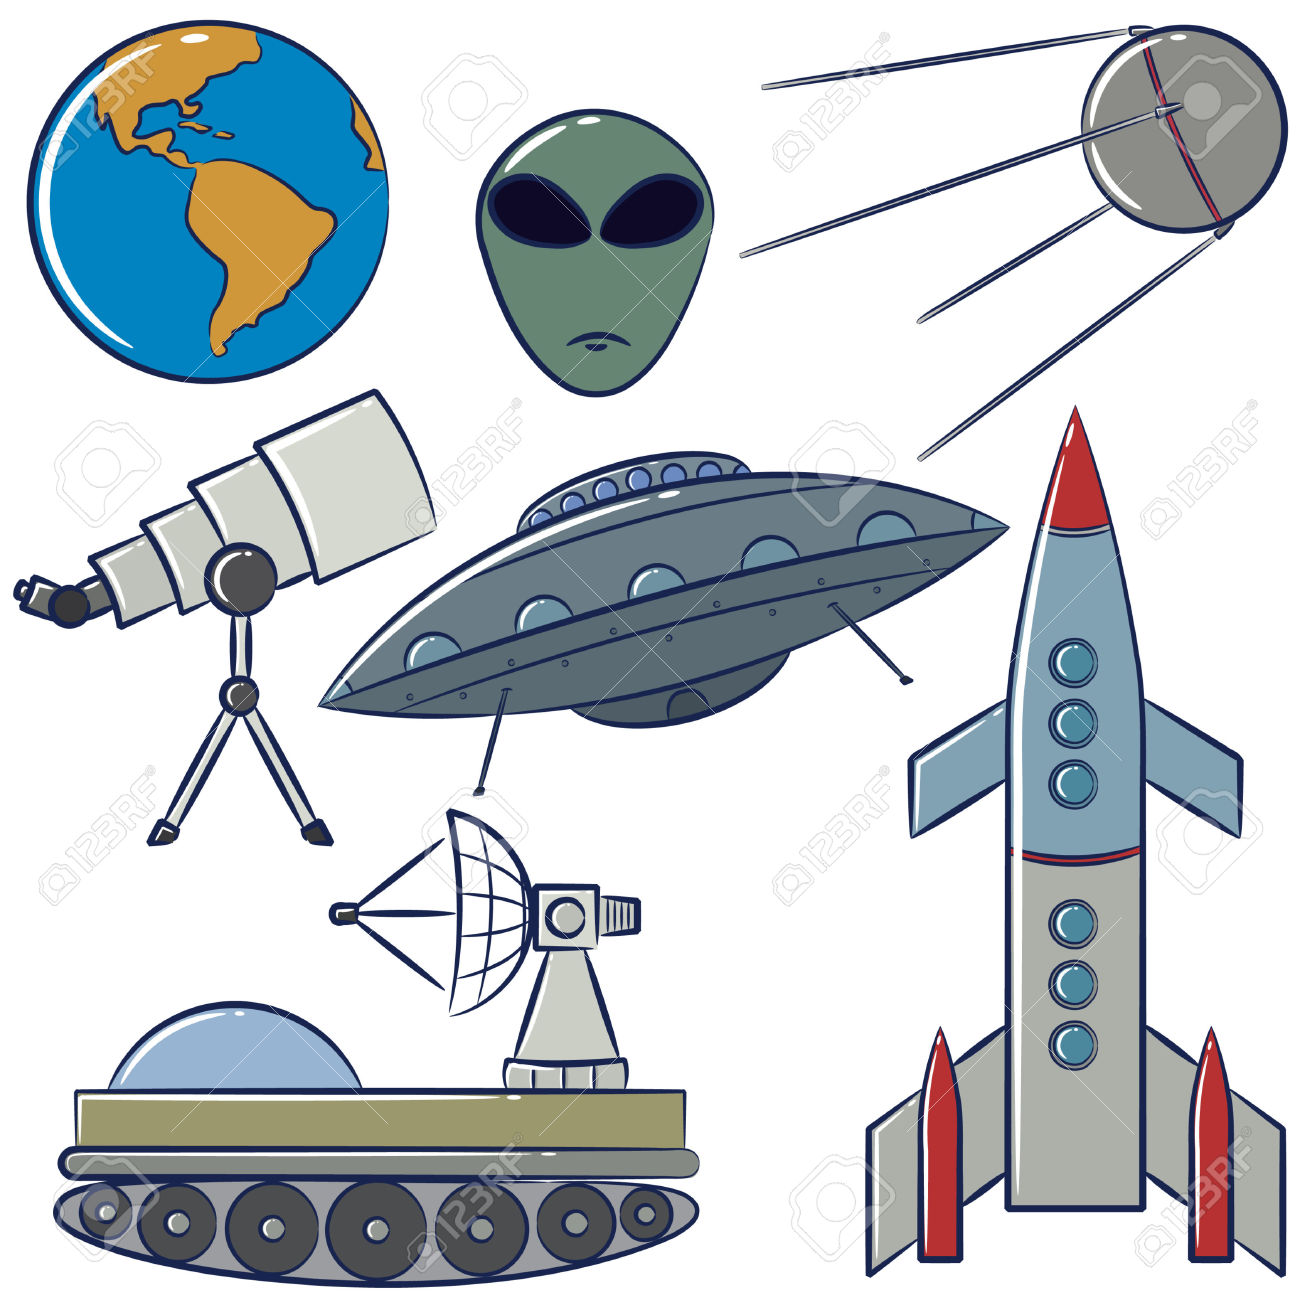 Free space exploration clipart.